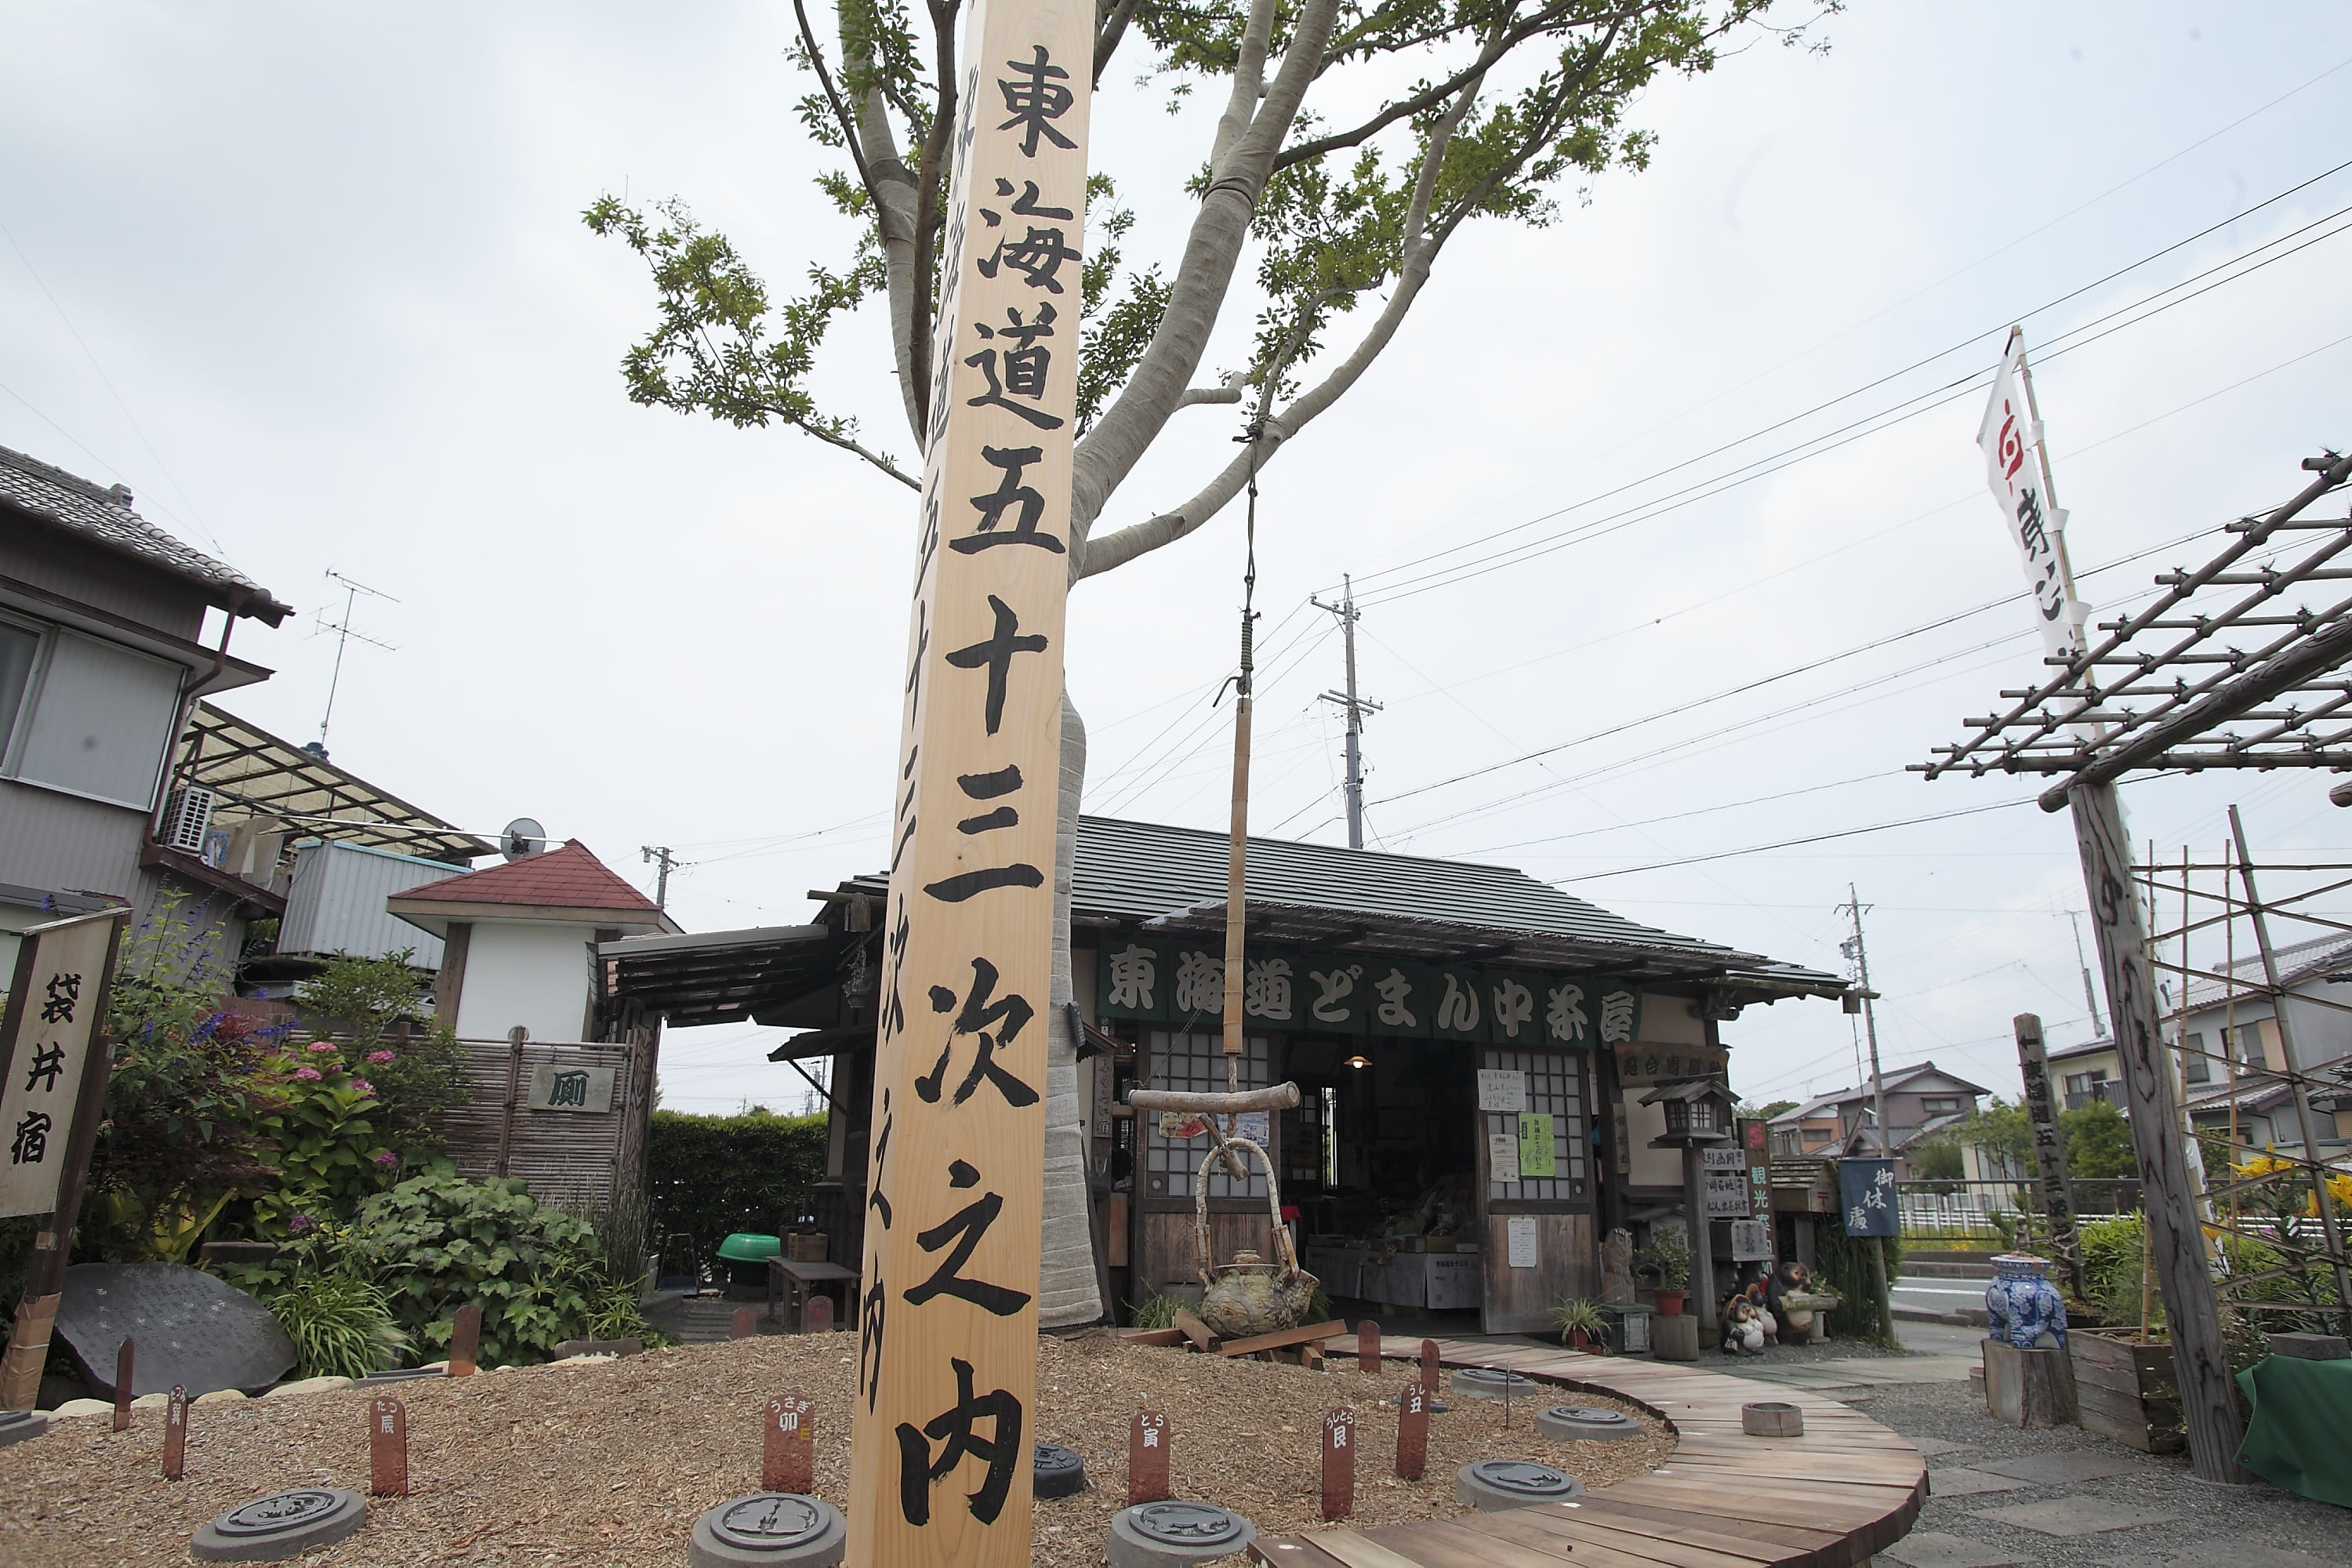 Fukuroi-juku, in the middle of the 53 Stations of the Tokaido Road